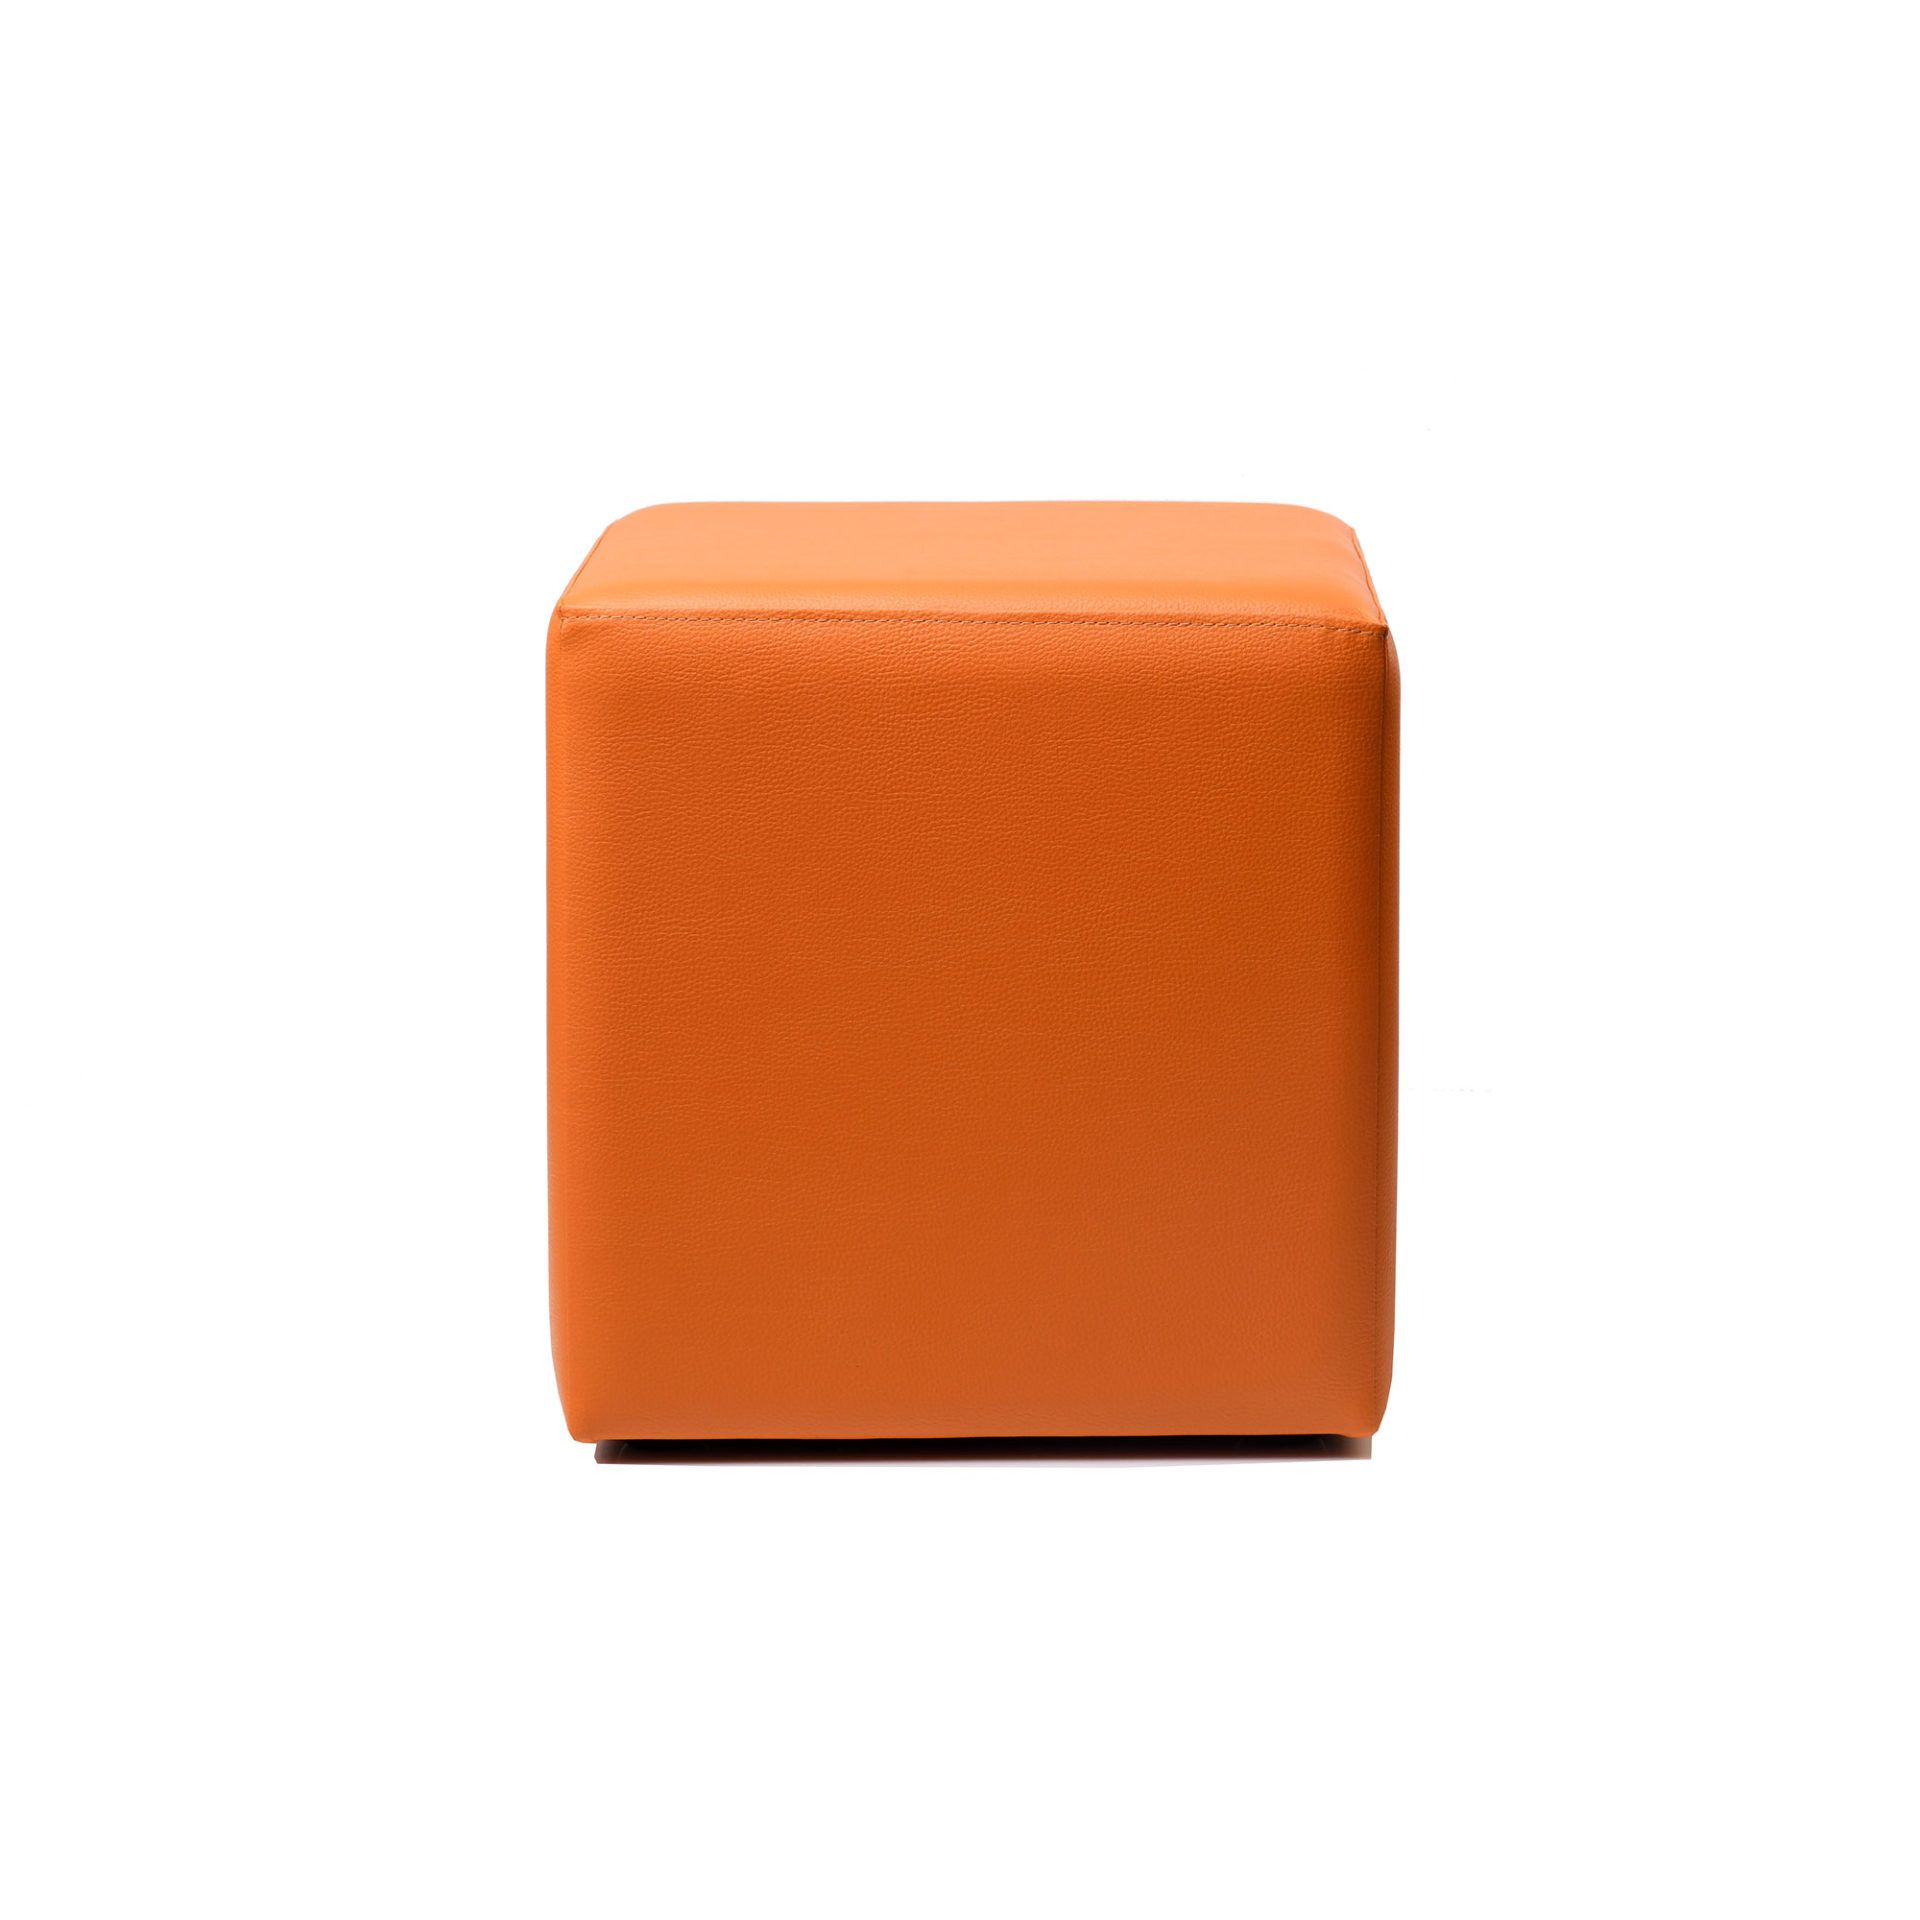 ottoman square orange01